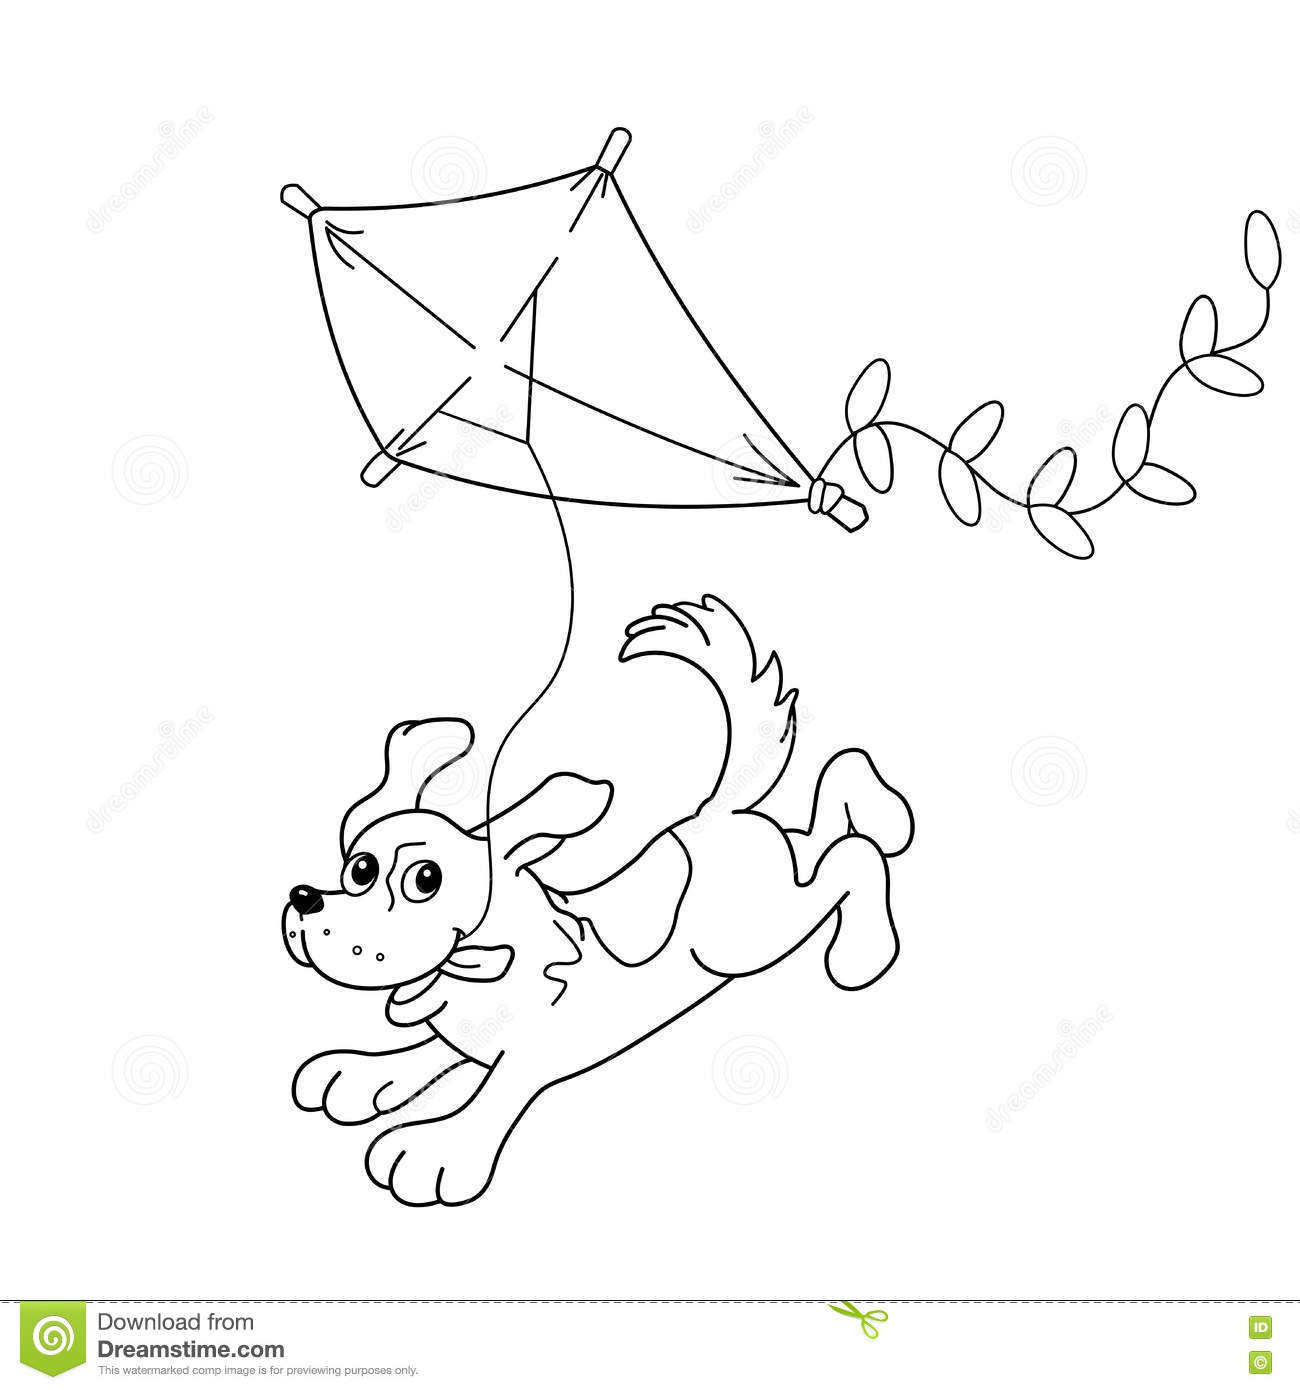 Free coloring pages kite - Royalty Free Vector Download Coloring Page